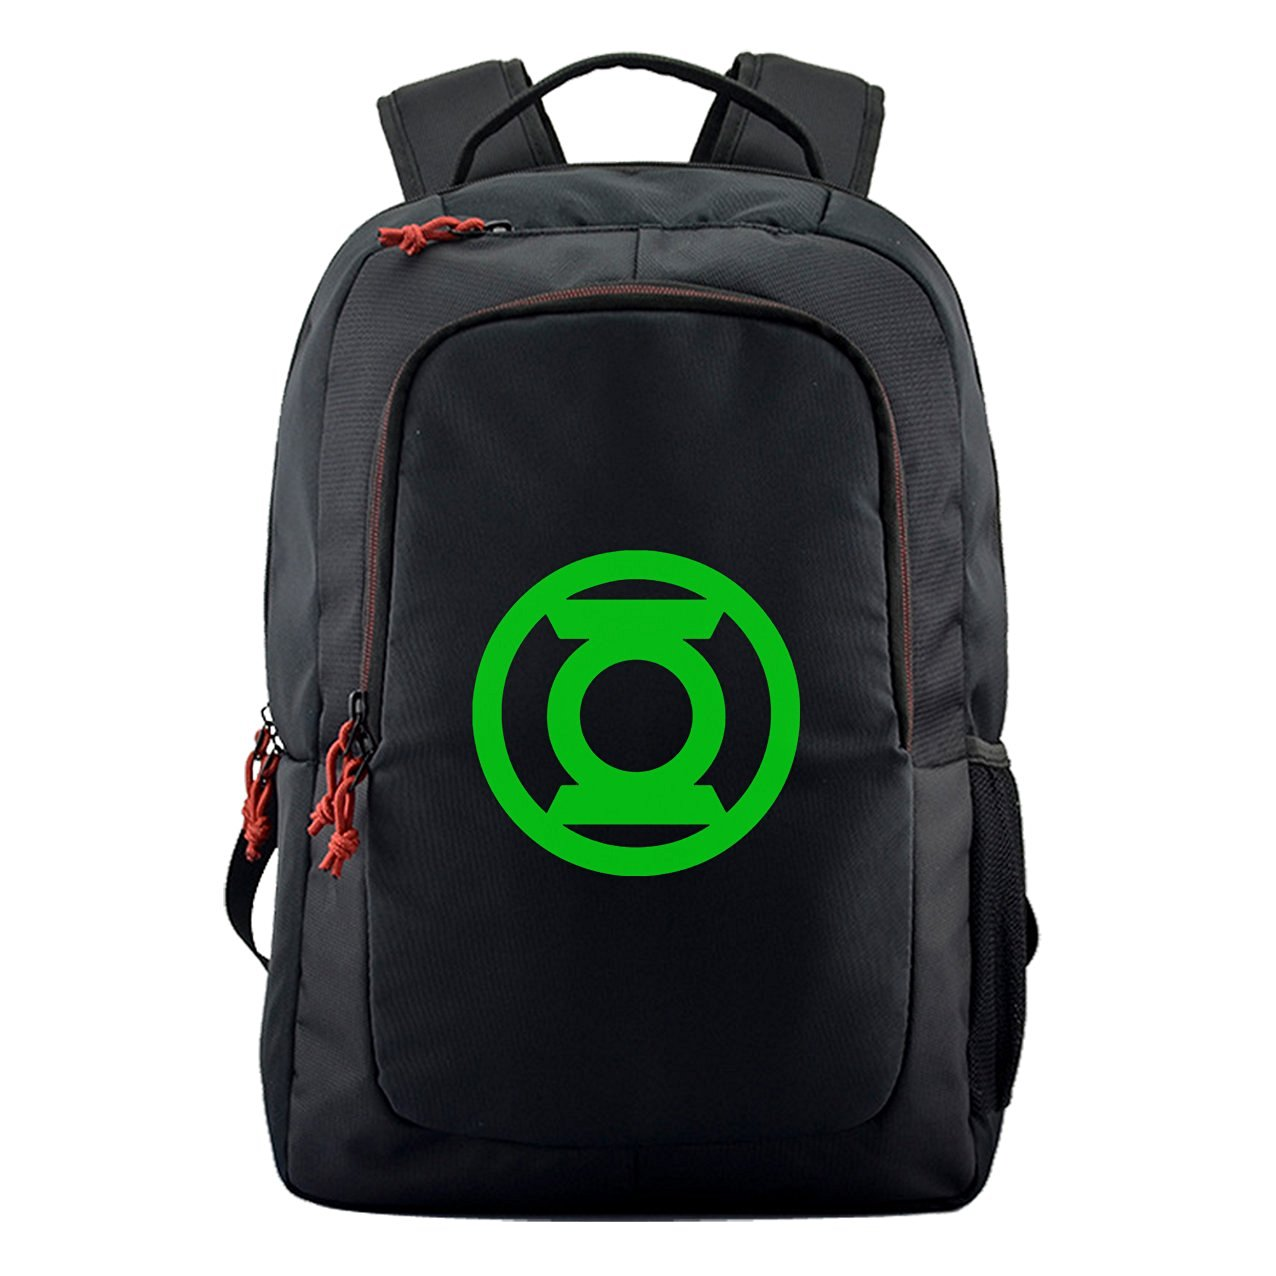 bd29f1179603 Cheap Green Computer Bag, find Green Computer Bag deals on line at ...